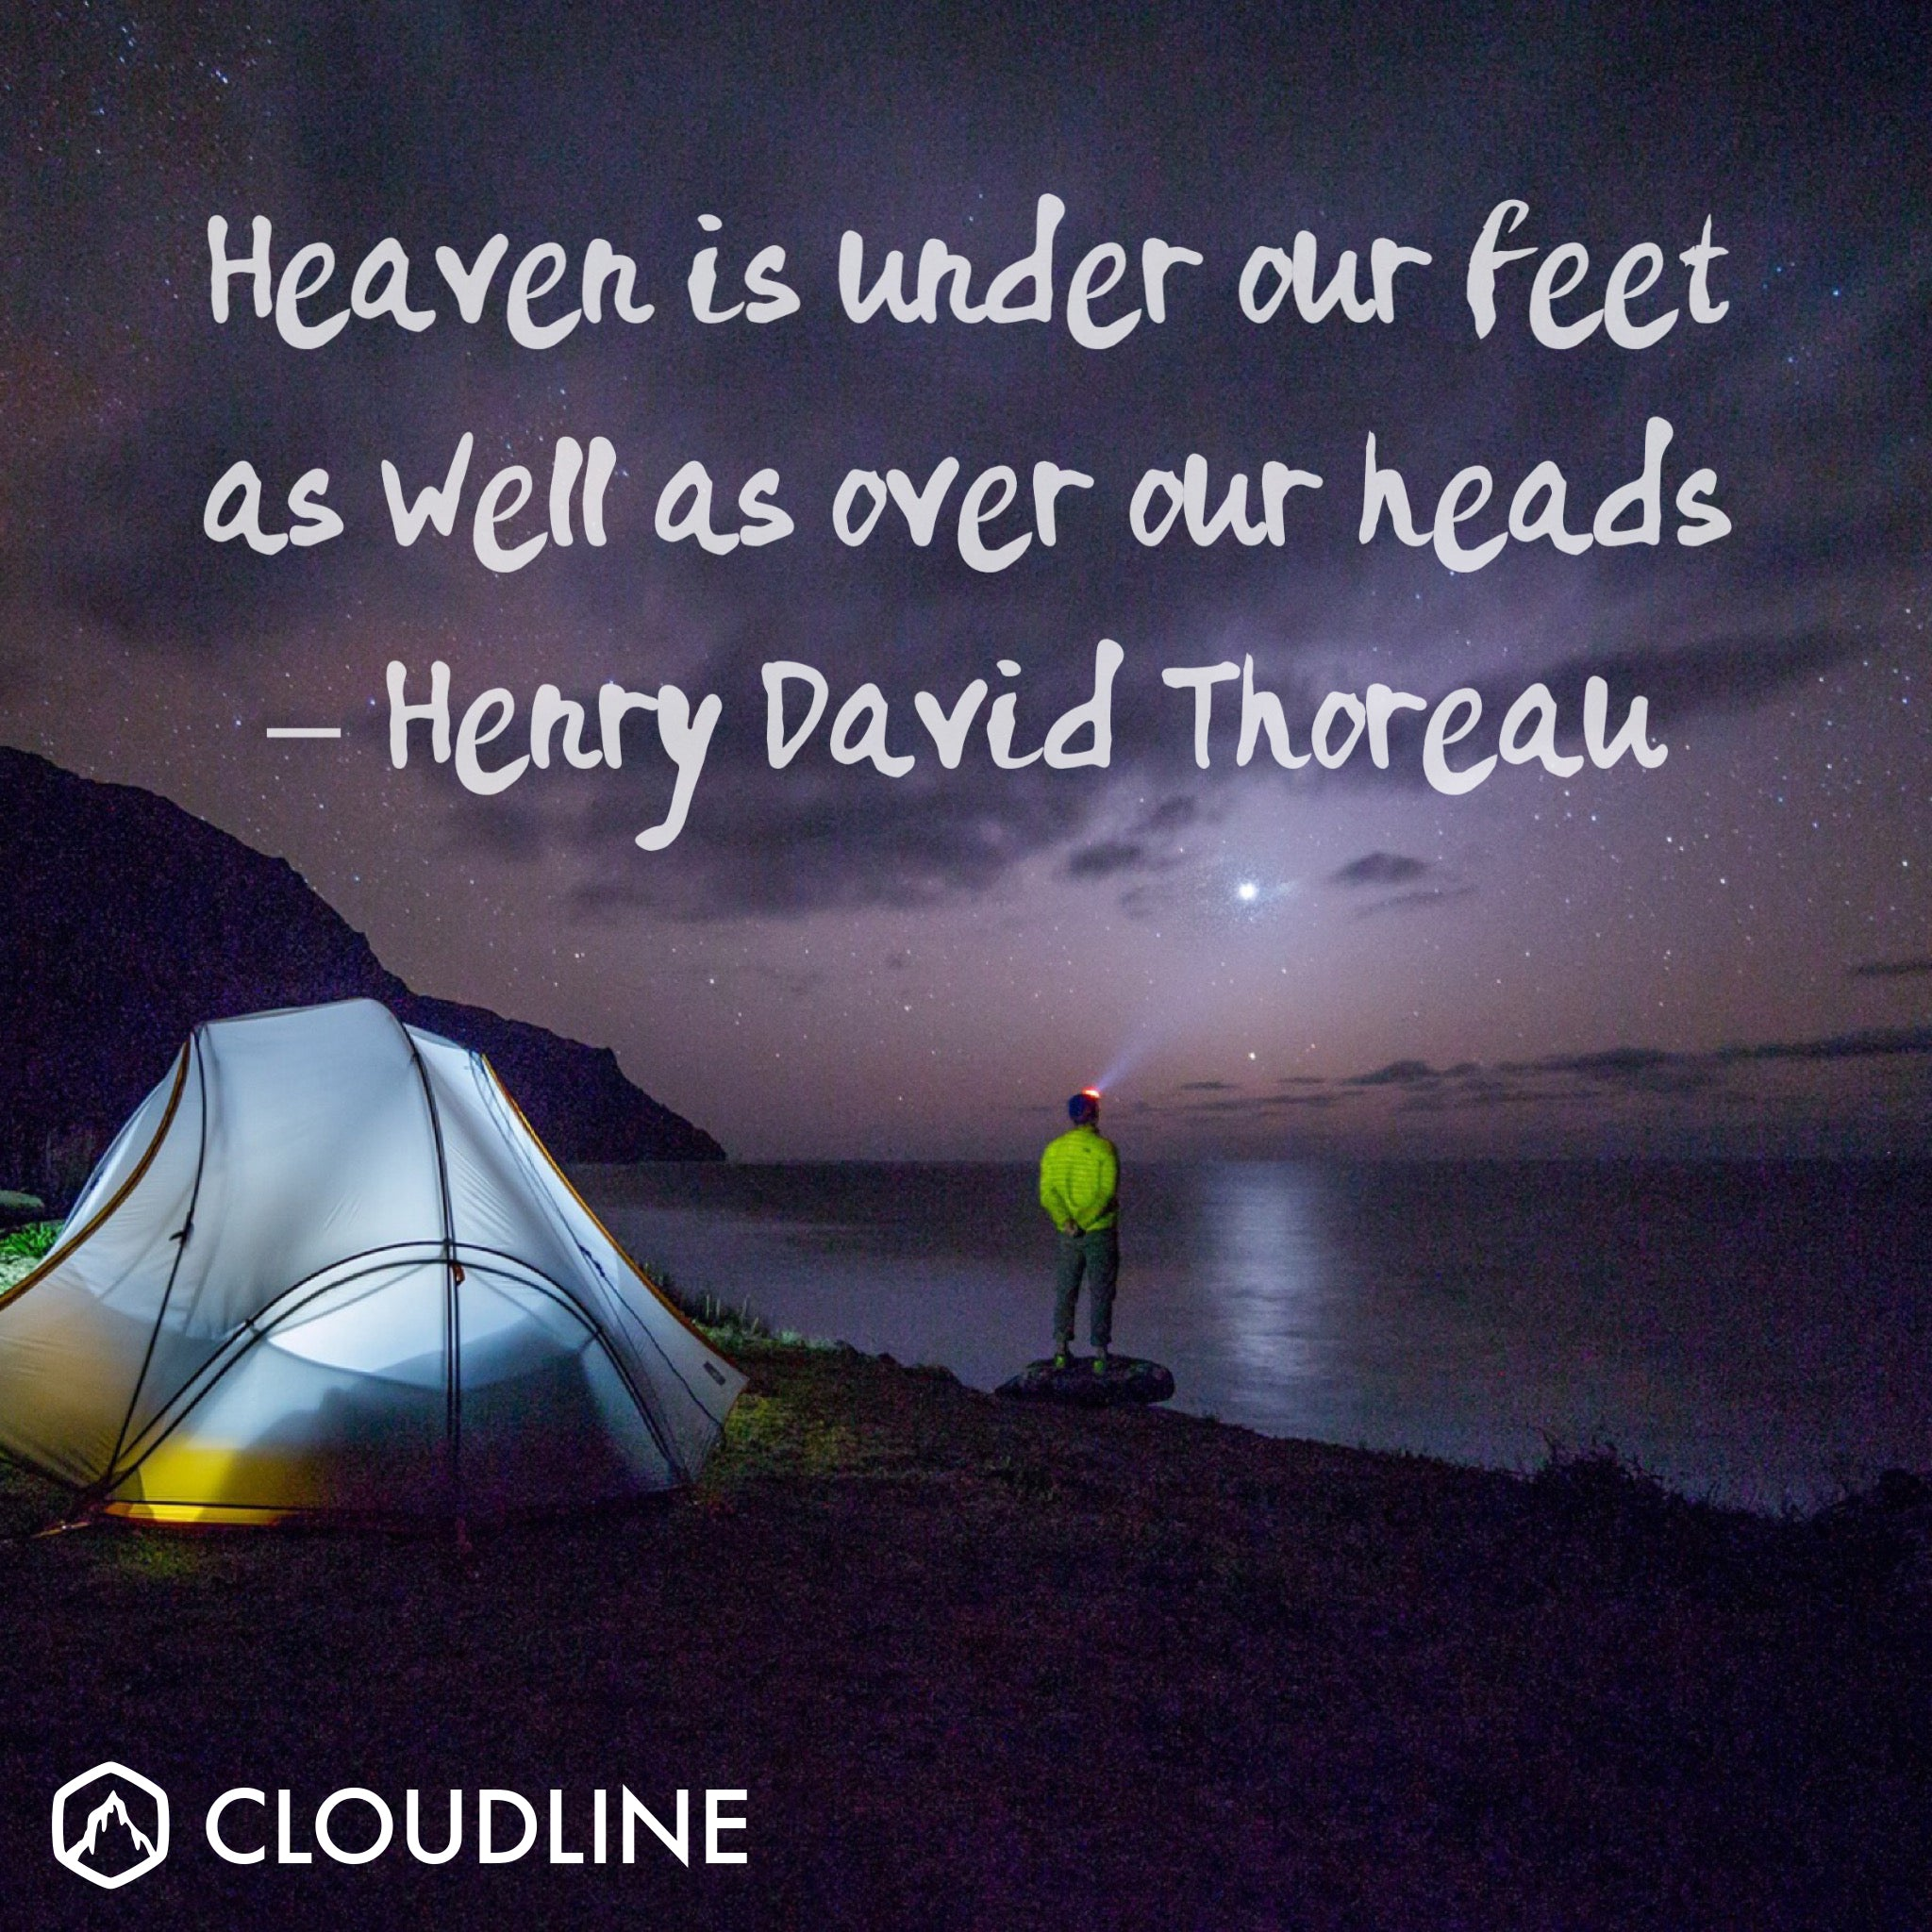 Henry David Thoreau on Heaven on Earth